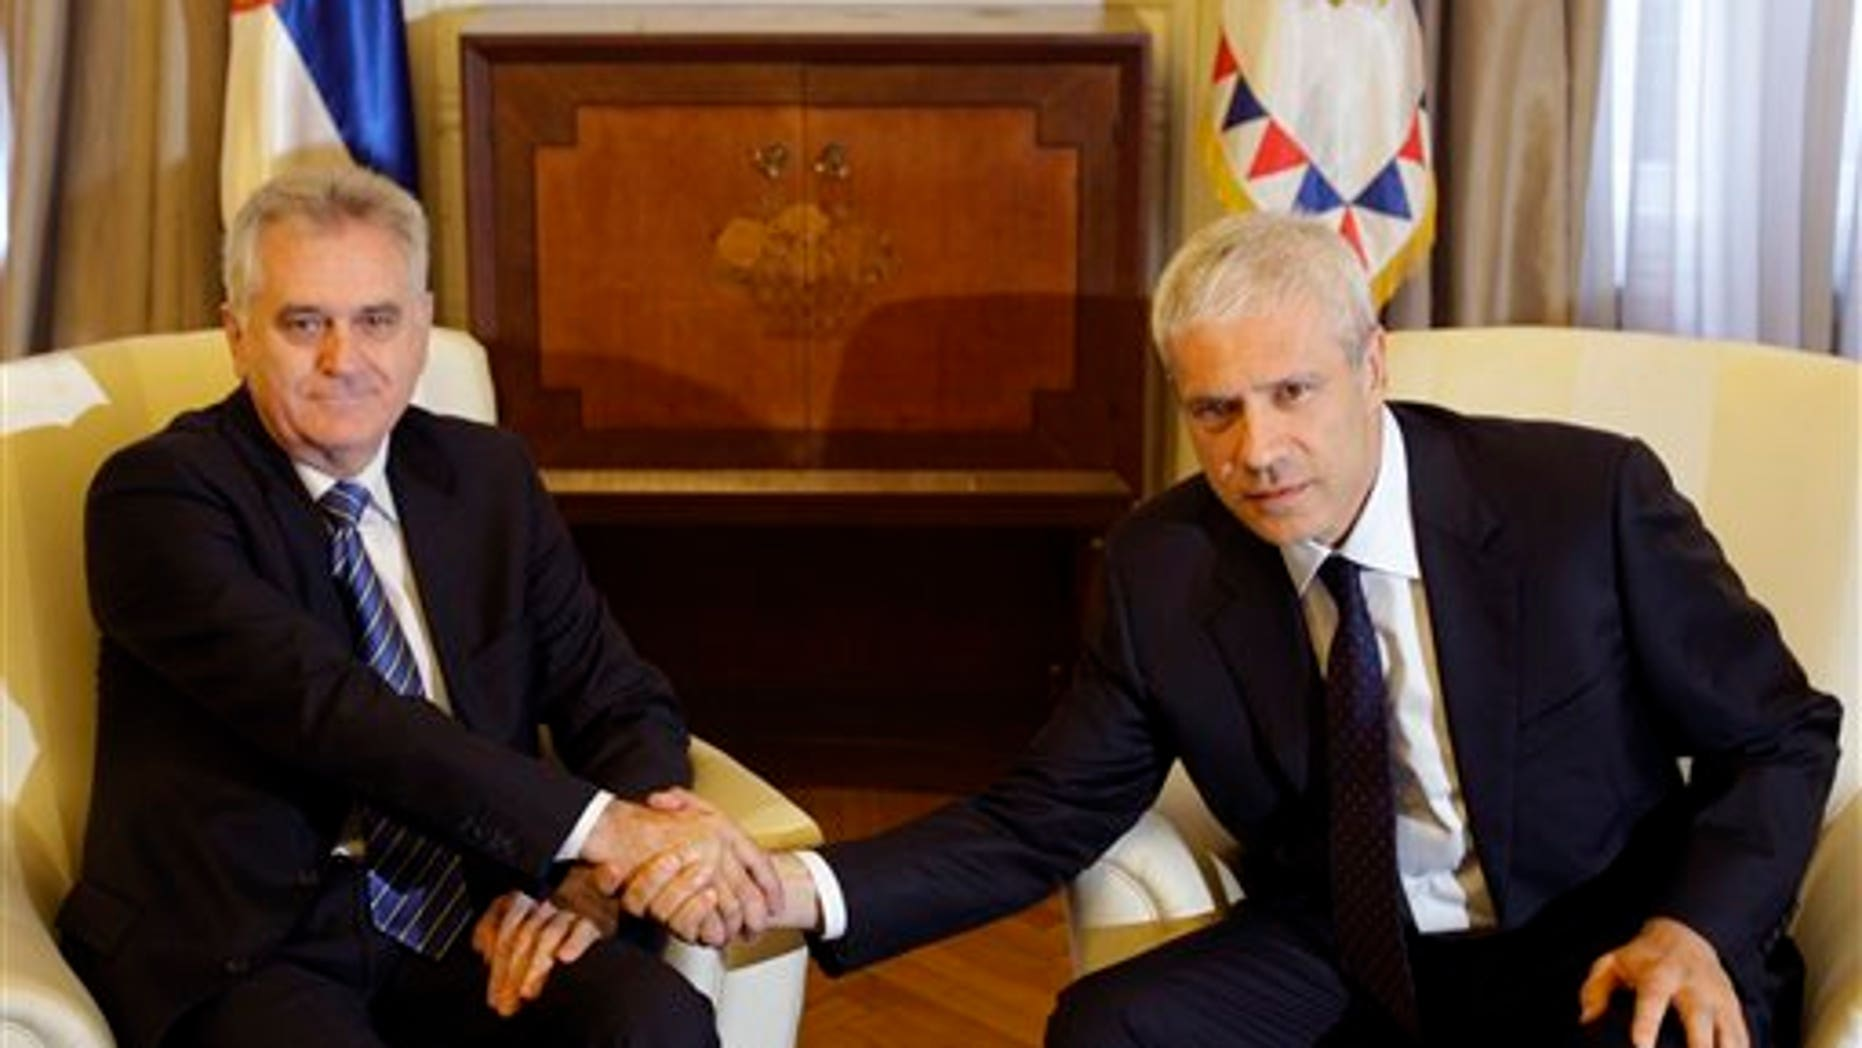 May 28, 2012: Newly elected Serbian President Tomislav Nikolic, left, shakes hands with former president Boris Tadic during meeting in the Serbian presidency building, in Belgrade, Serbia.